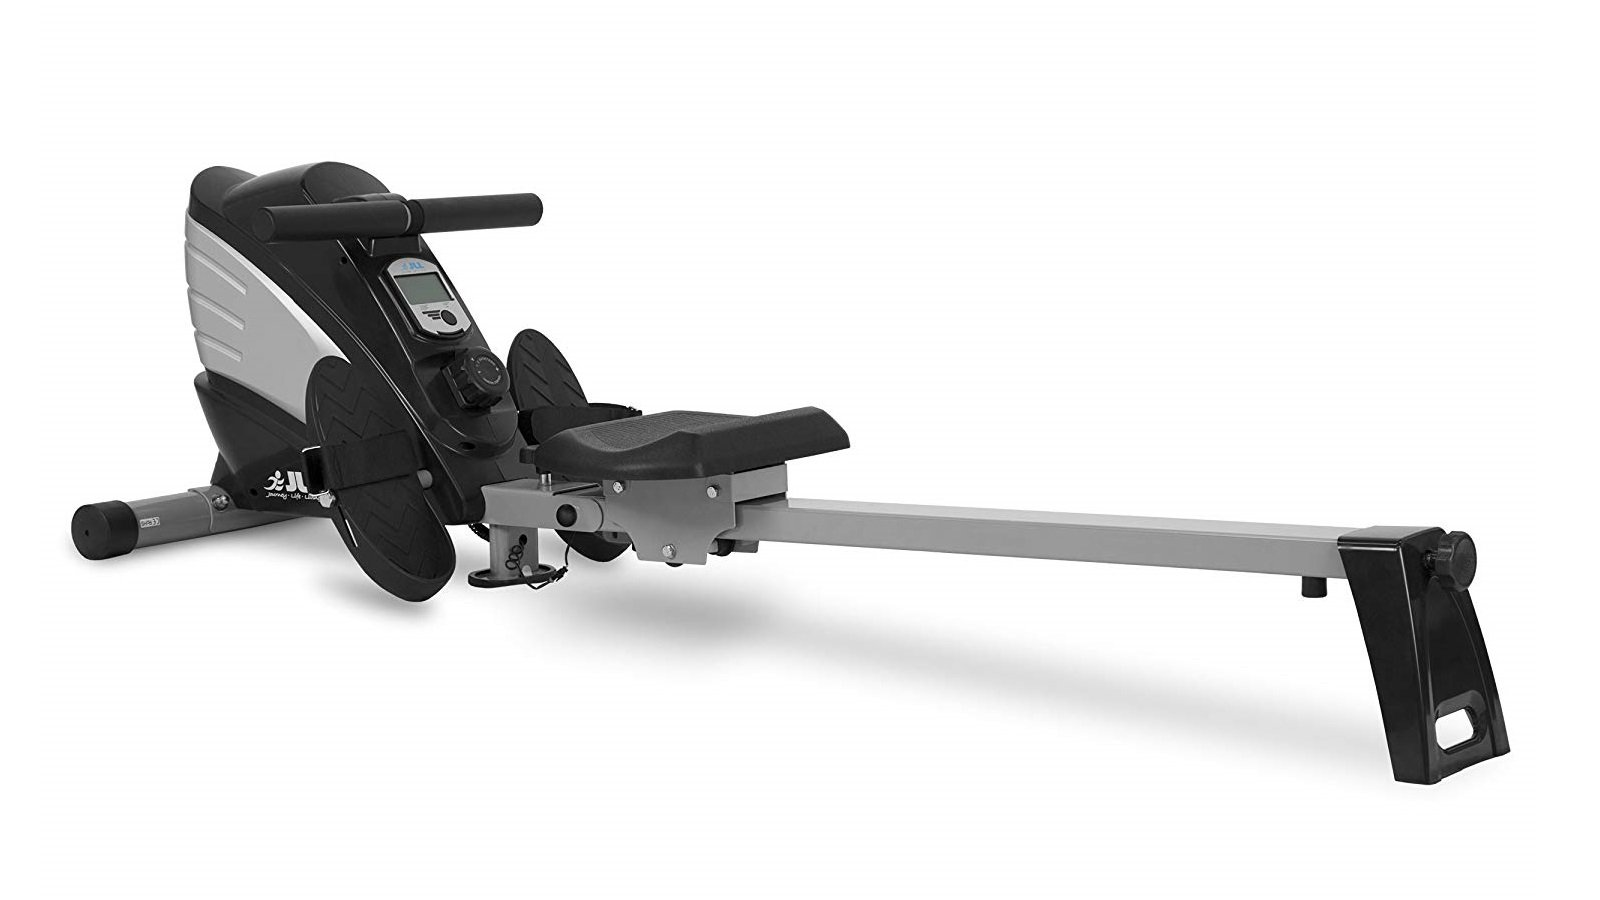 Best rowing machine deals: Row yourself fit in the new year | Expert